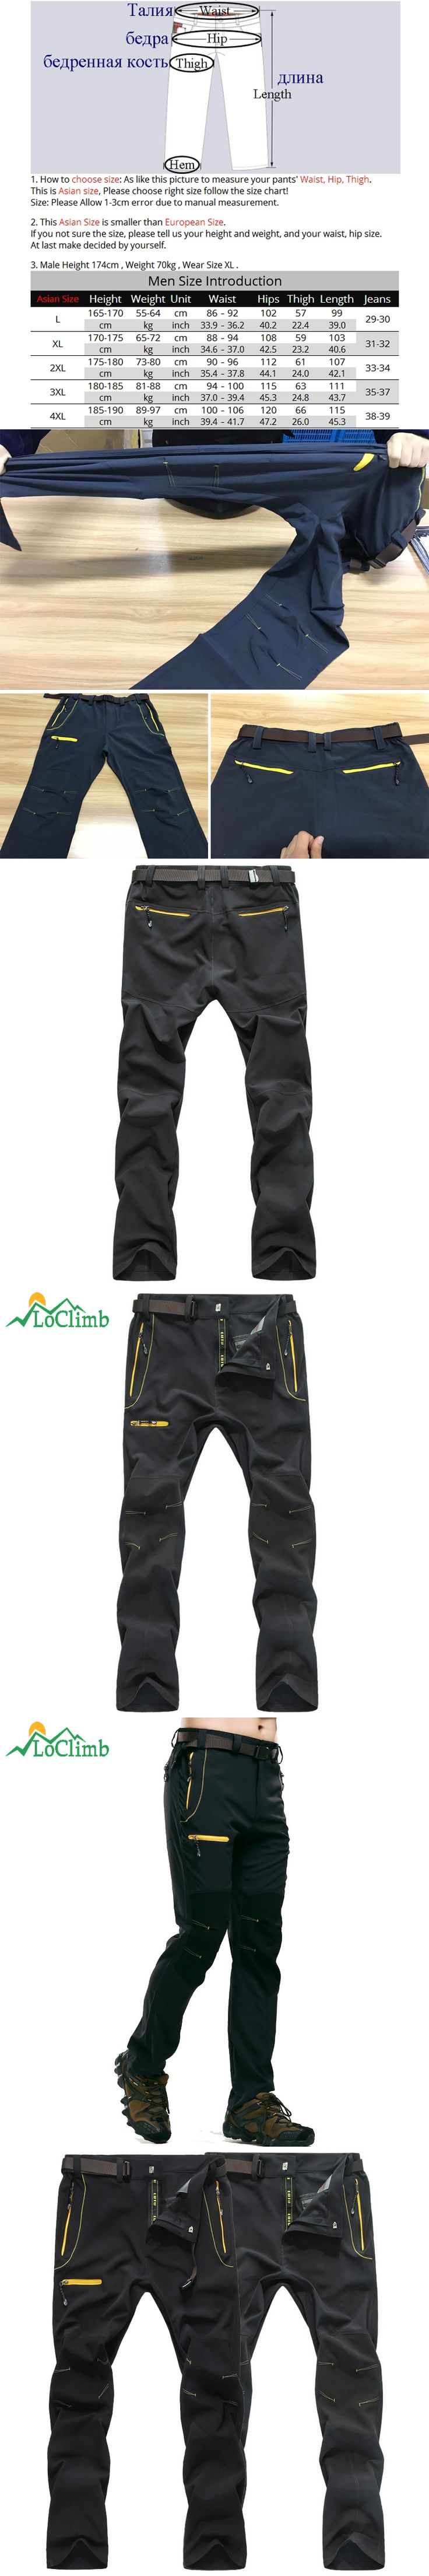 LoClimb Brand 2017 Autumn Camping Hiking Pants Men Stretch Waterpoof Outdoor Sport Trousers For Trekking Climbing Cycling,AM119